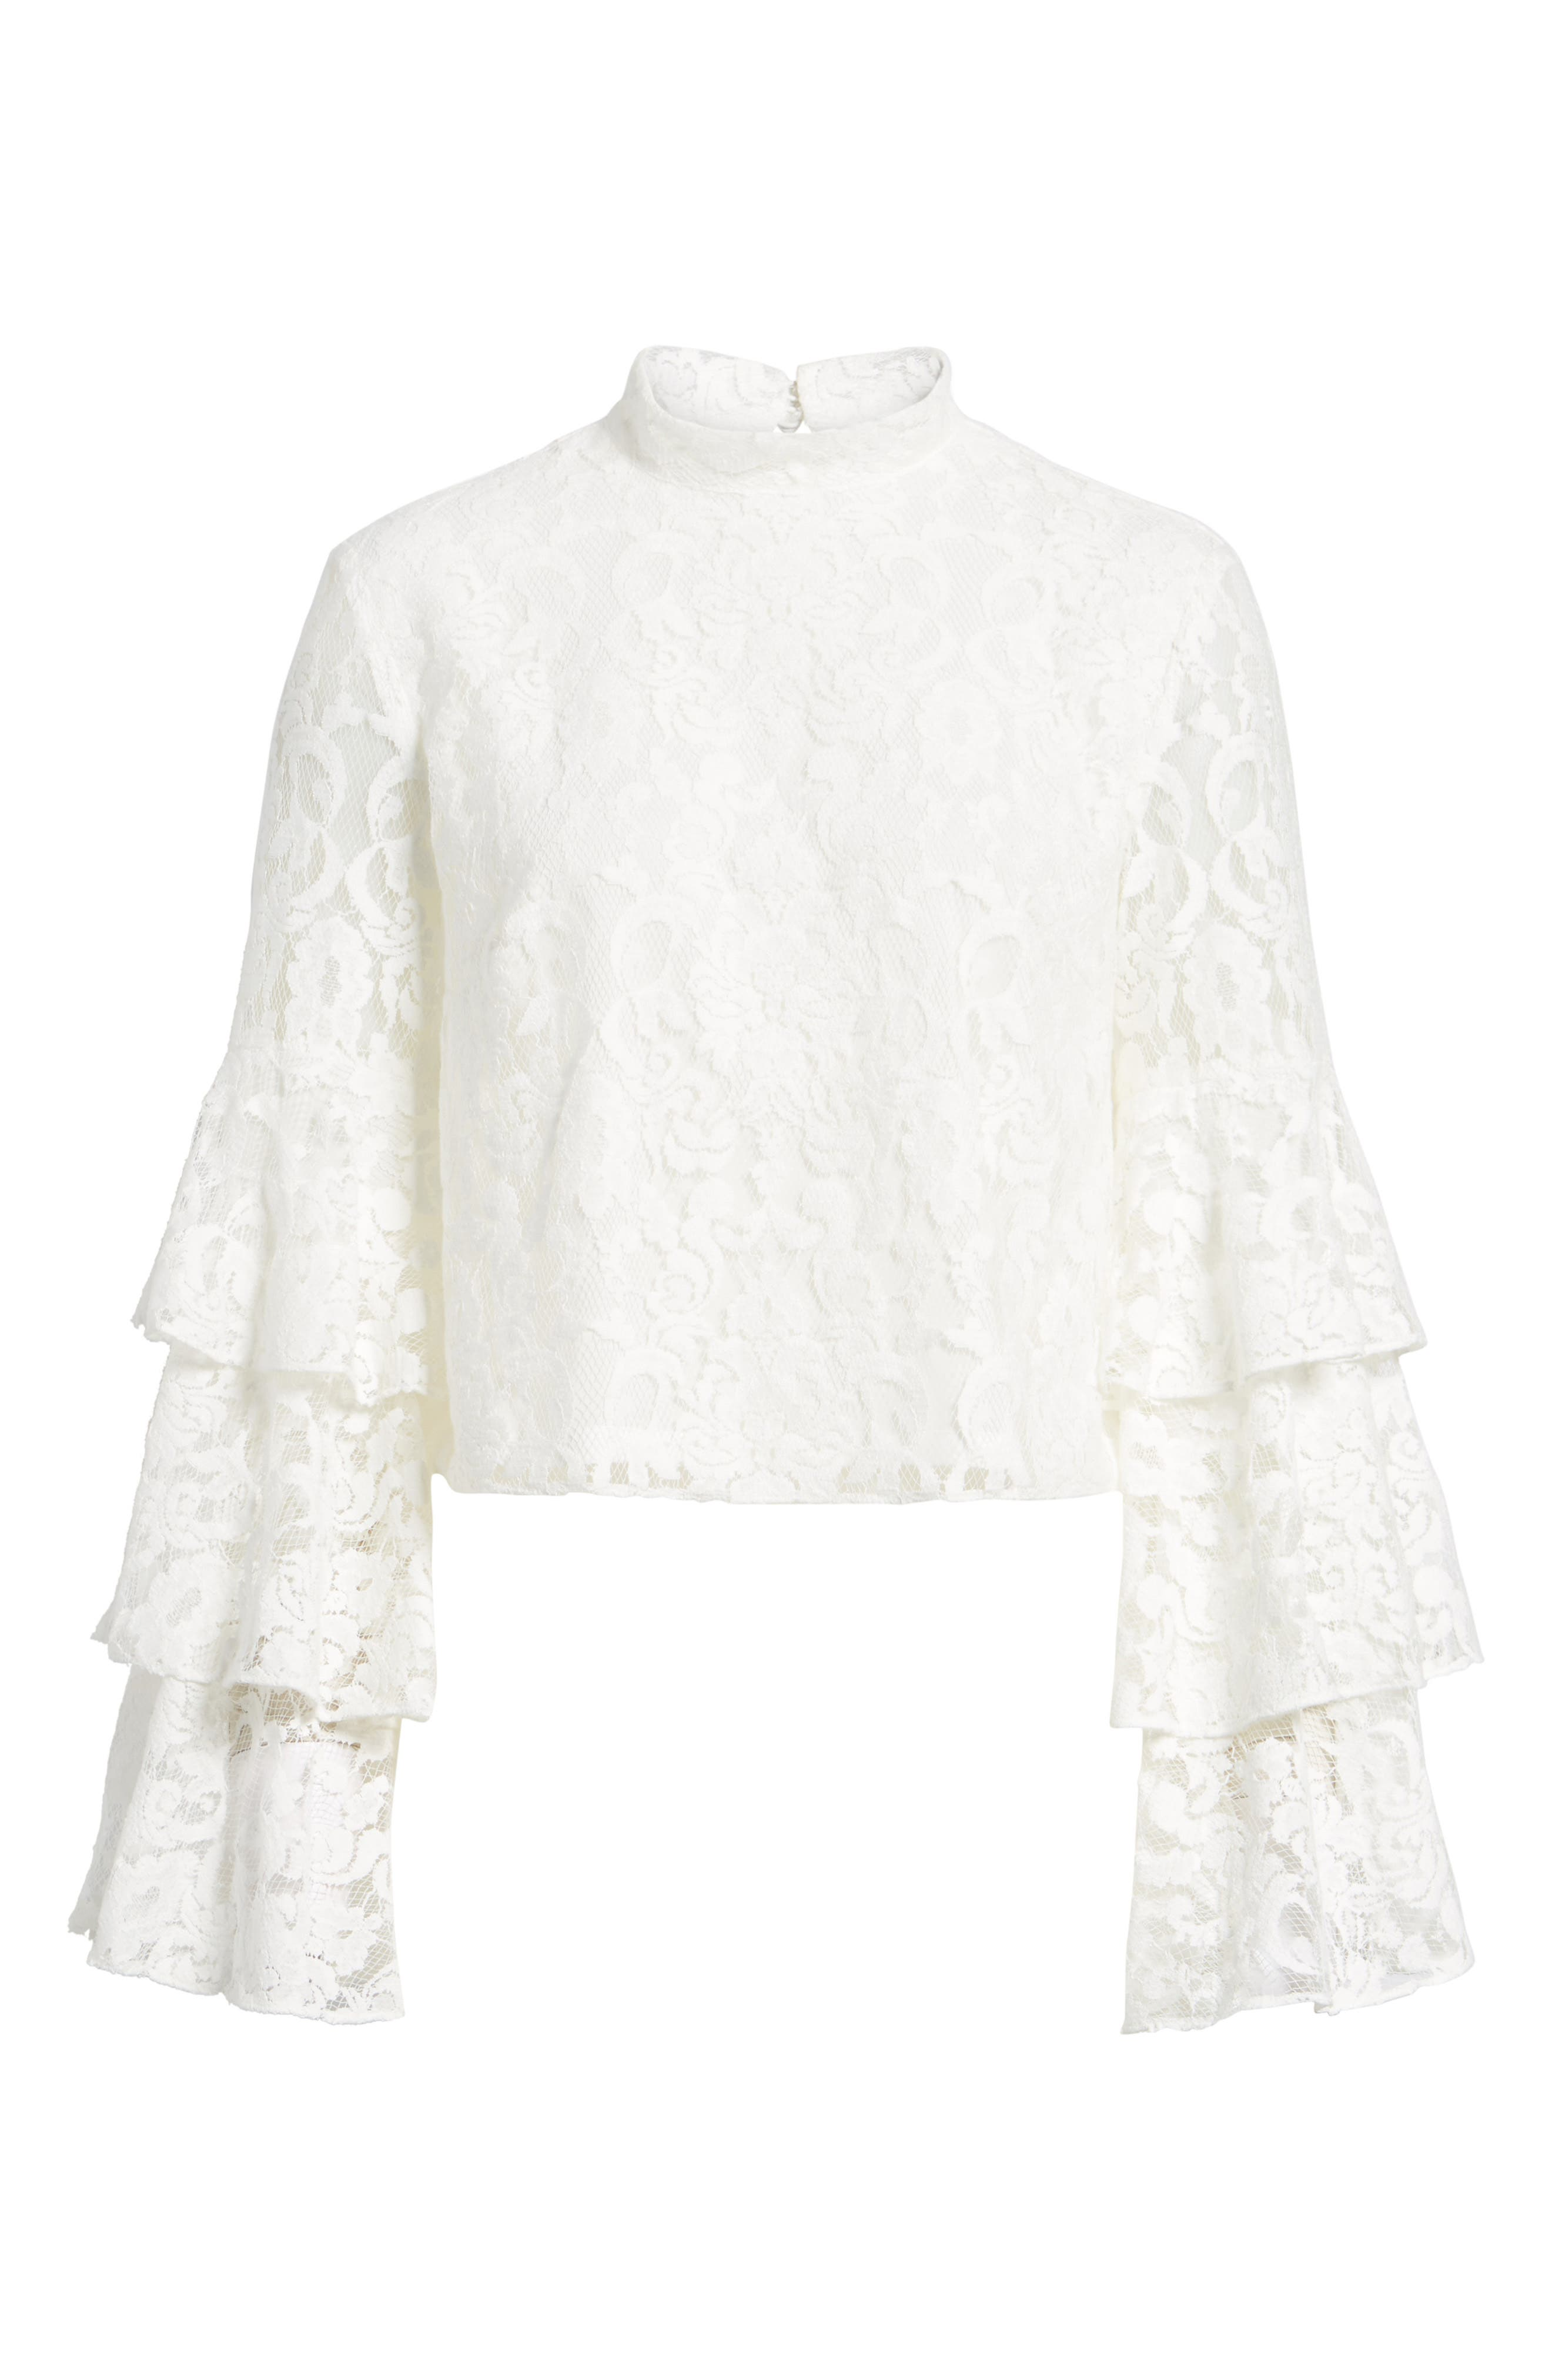 Ruffle Sleeve Lace Top,                             Alternate thumbnail 6, color,                             100